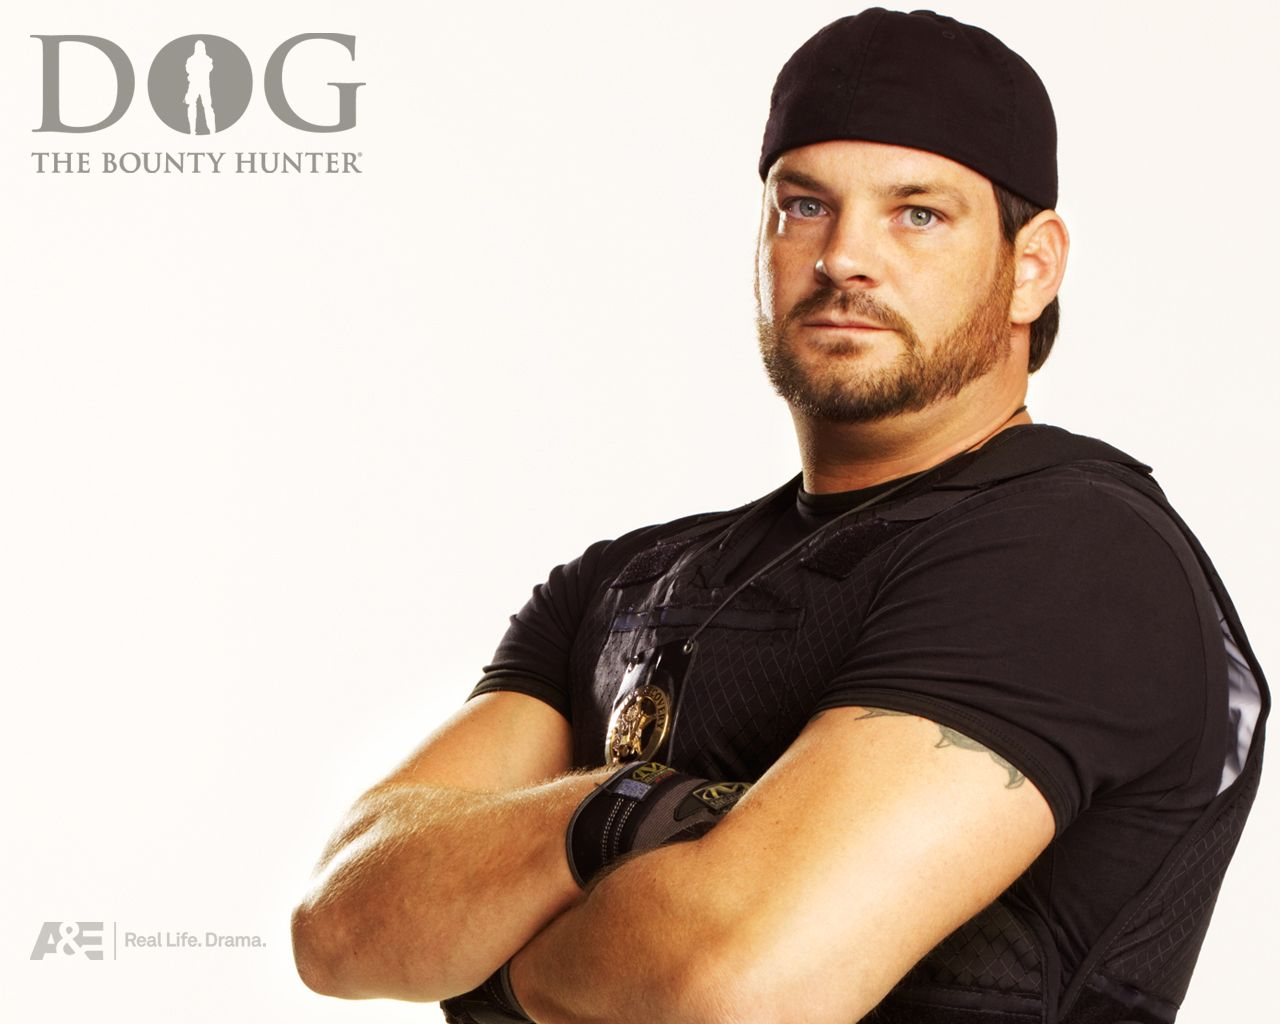 Duane Lee - dog-the-bounty-hunter Wallpaper. I think he's HOT!